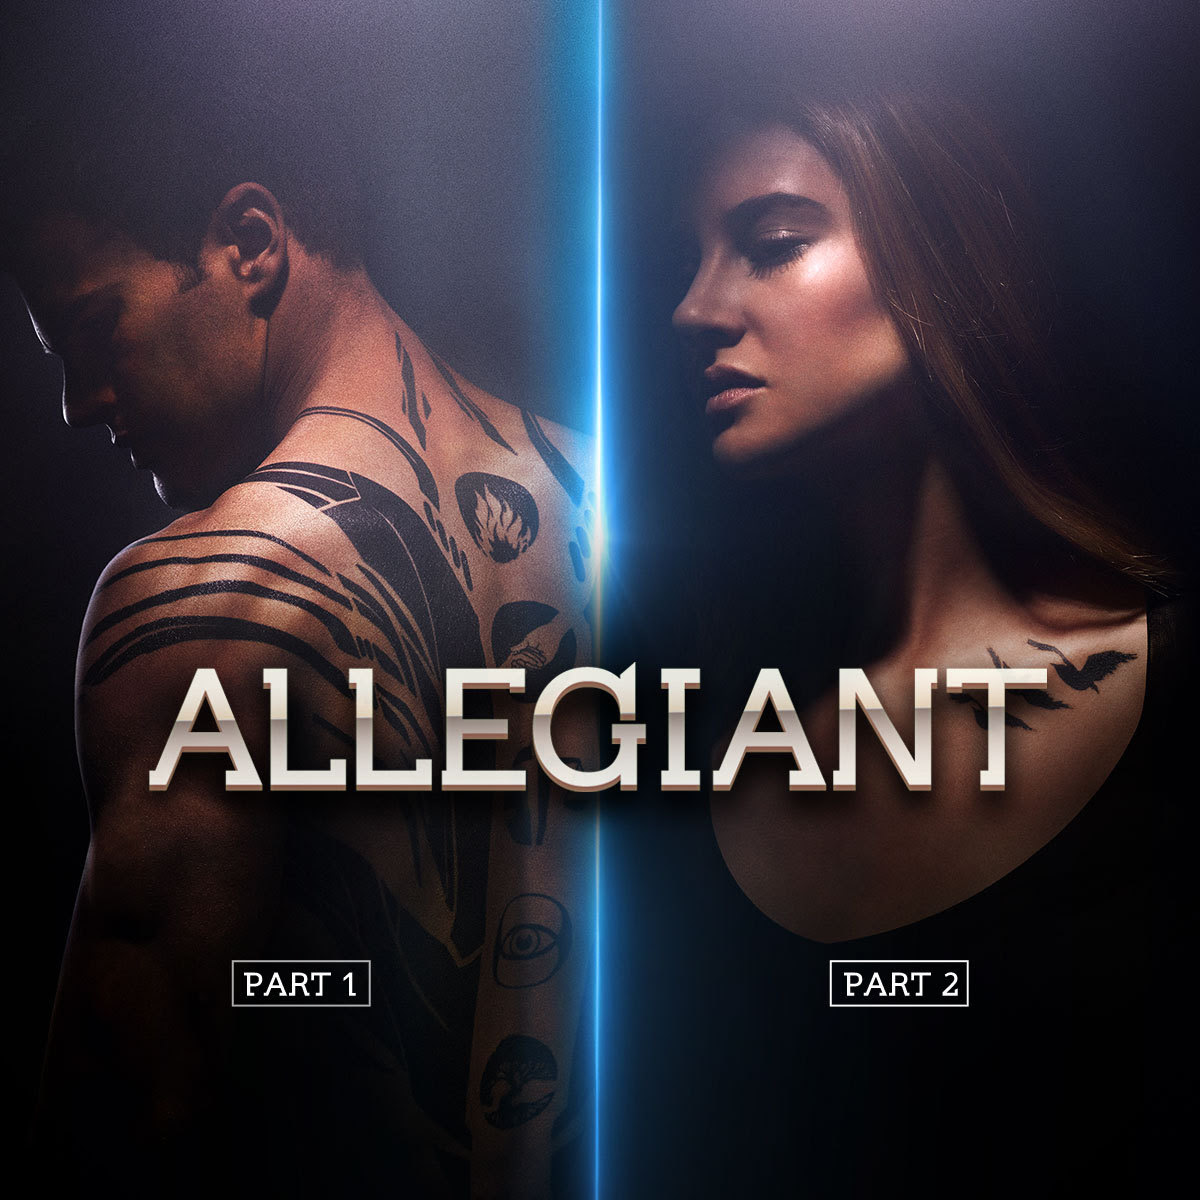 divergentmovie:  ALLEGIANT, PART 1: 3/18/16. ALLEGIANT, PART 2: 3/24/17. #VoteTris.  Exciting news, Initiates! You know we've hit the big time in YA franchises when the finale is split into 2 films (we're looking at you, Harry Potter, The Hunger Games, and Twilight).